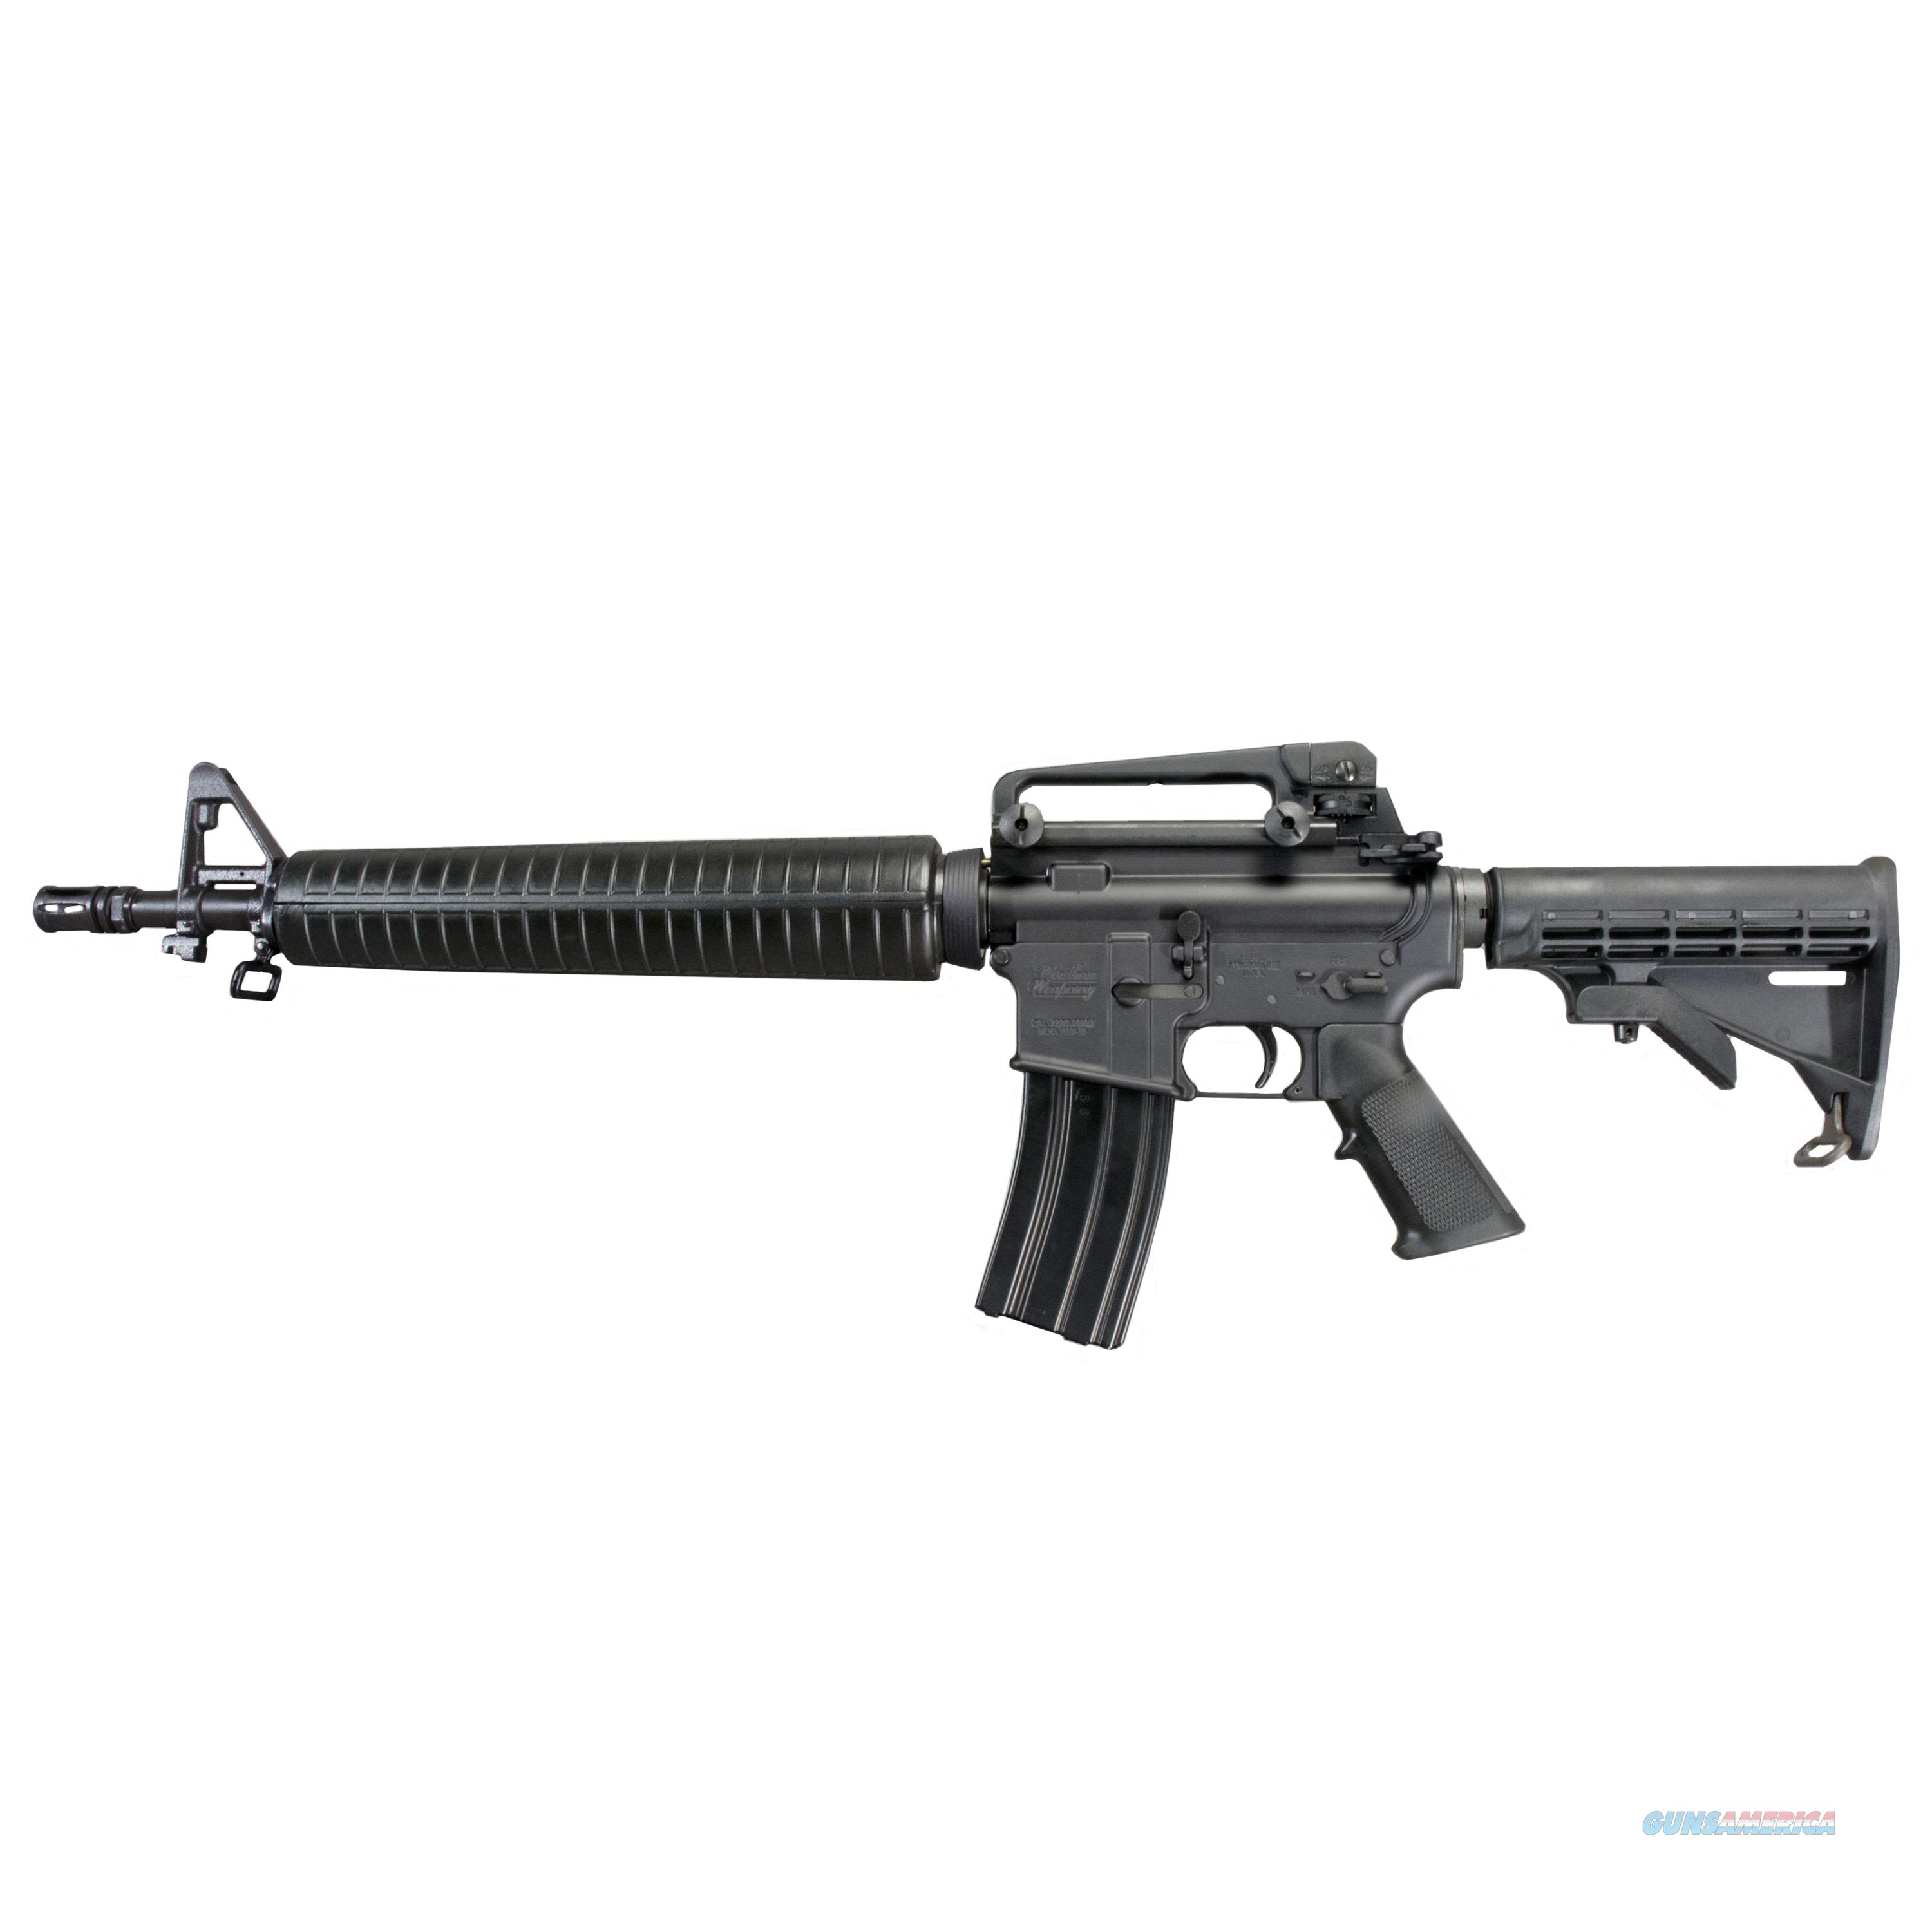 """Windham Weaponry Dissipator, 5.56Mm 16"""" Barrel, 30 Rounds, Black R16M4DA4T  Guns > Rifles > Windham Weaponry Rifles"""